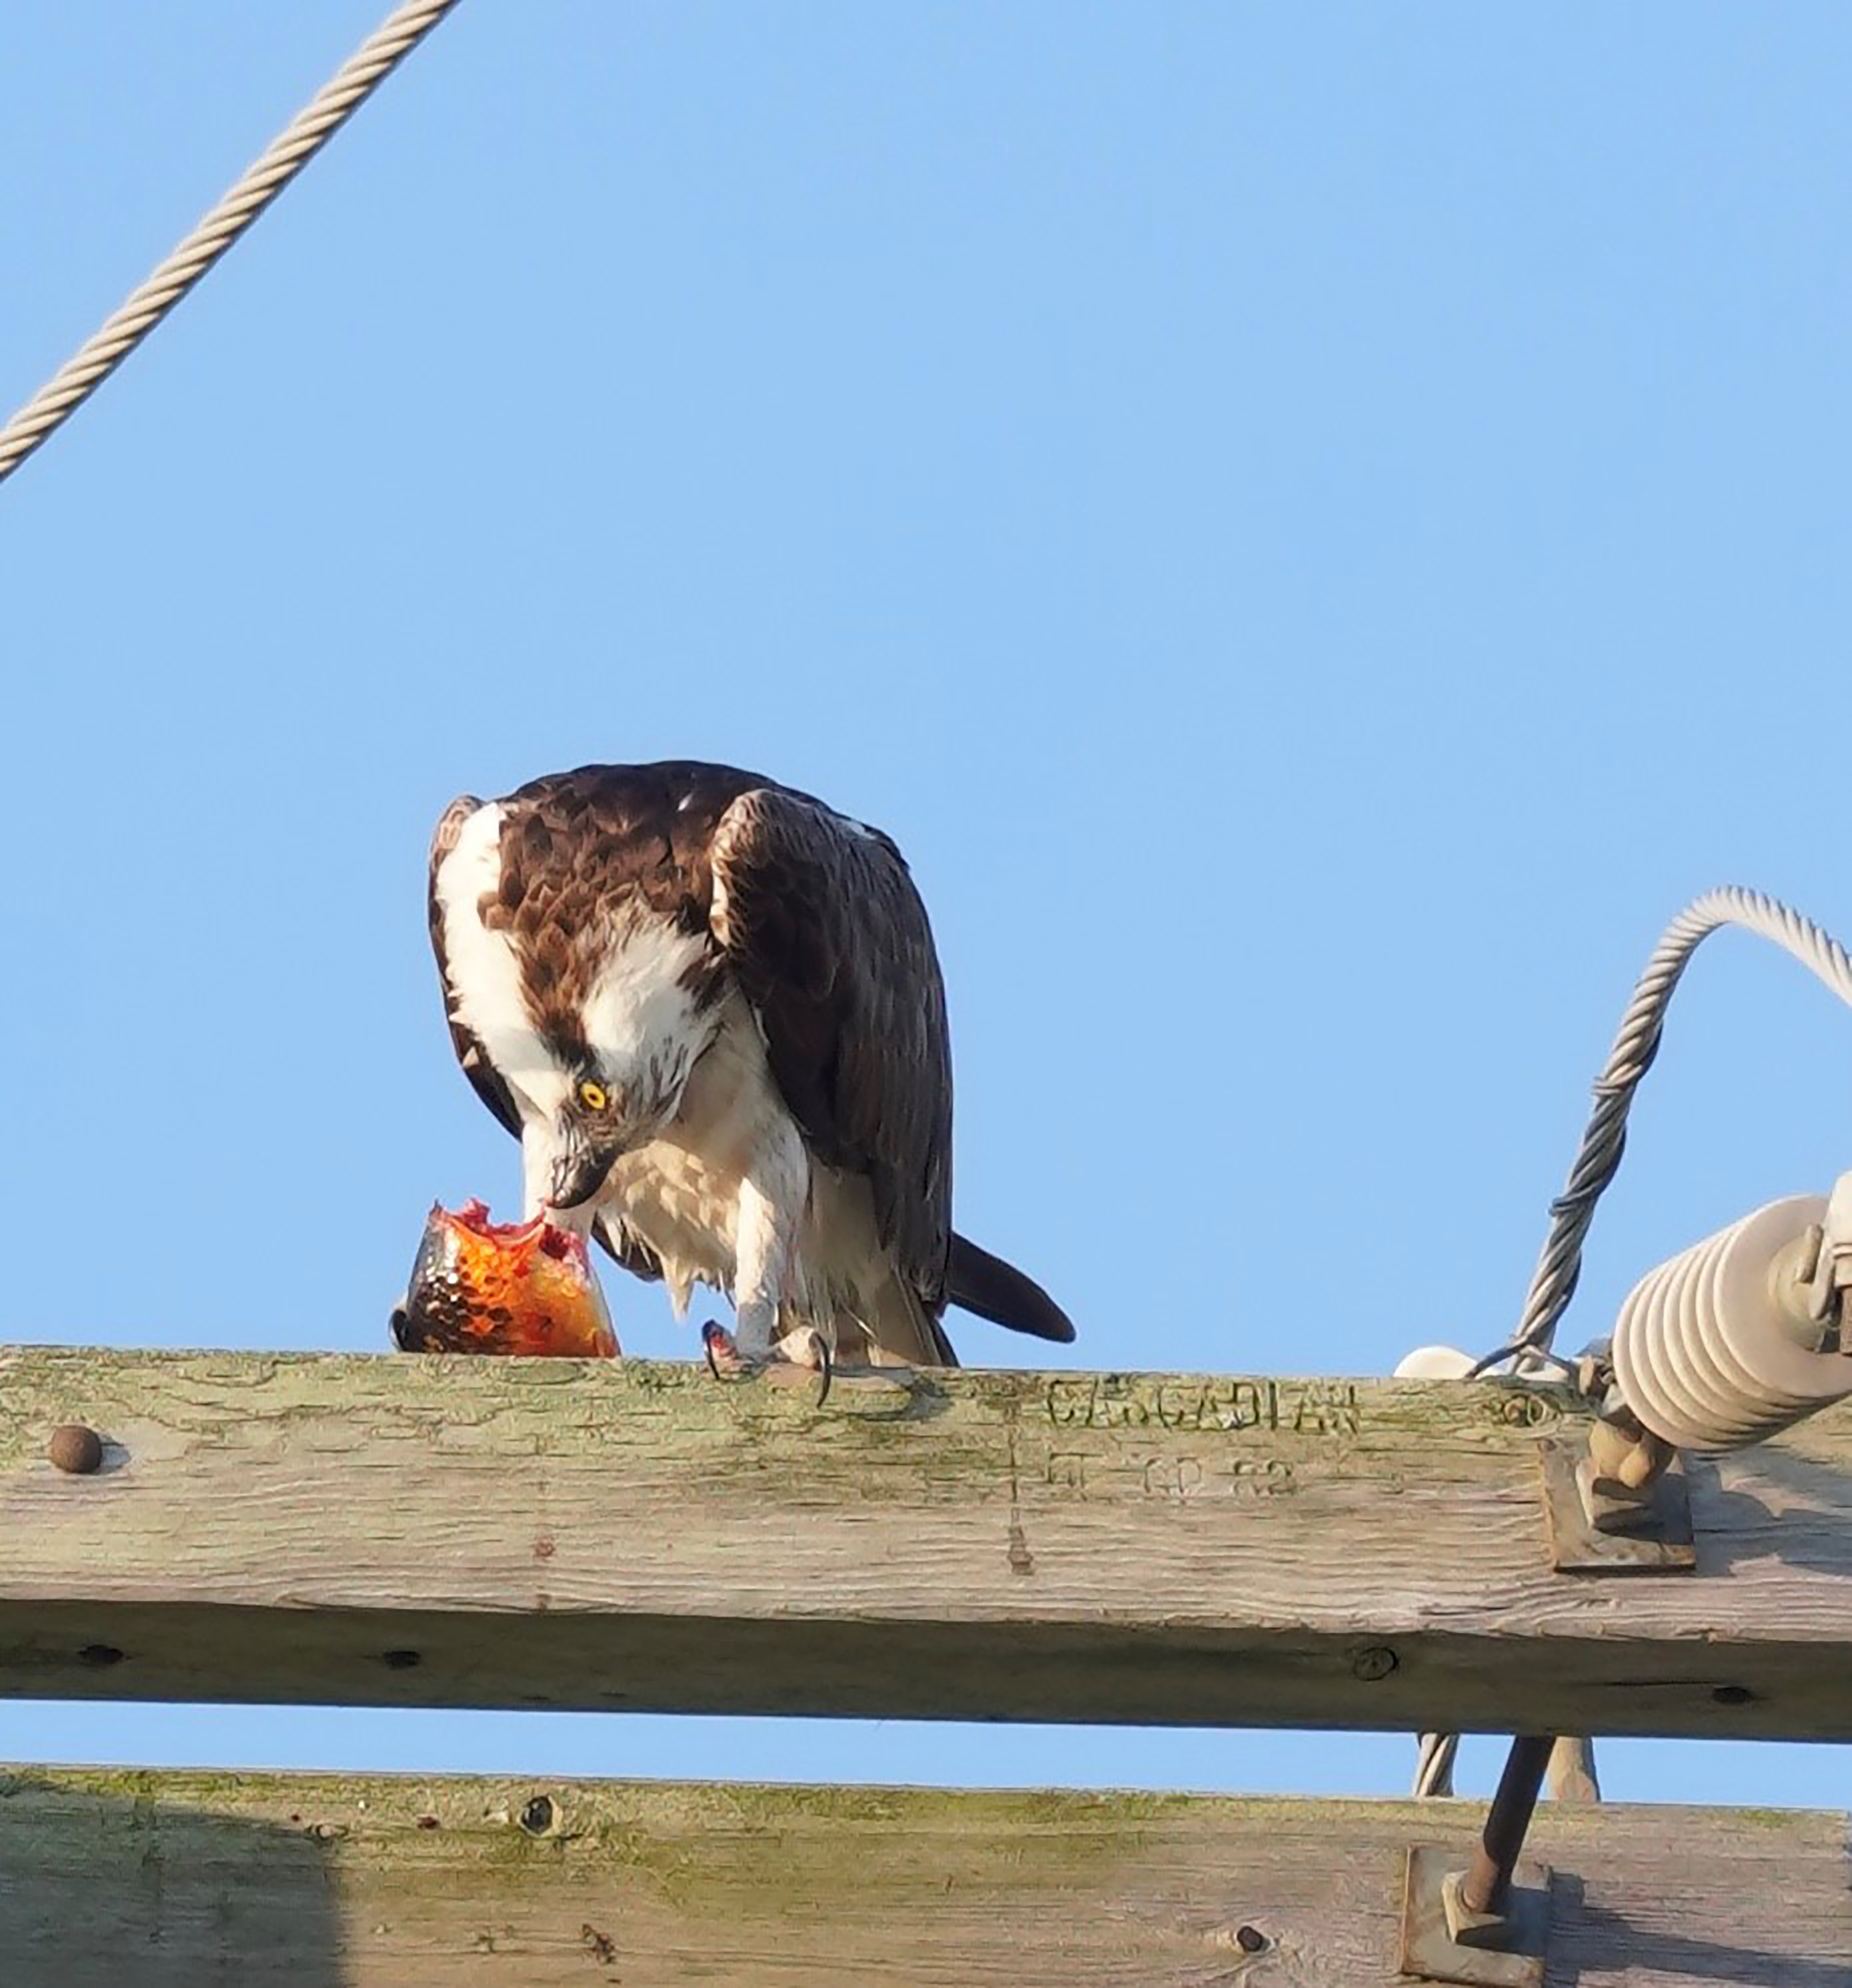 (3/4) A hawk enjoys a yummy breakfast treat. nature, wildlife, animal, fish, bird, hawk Photo: Leticia Shaddix